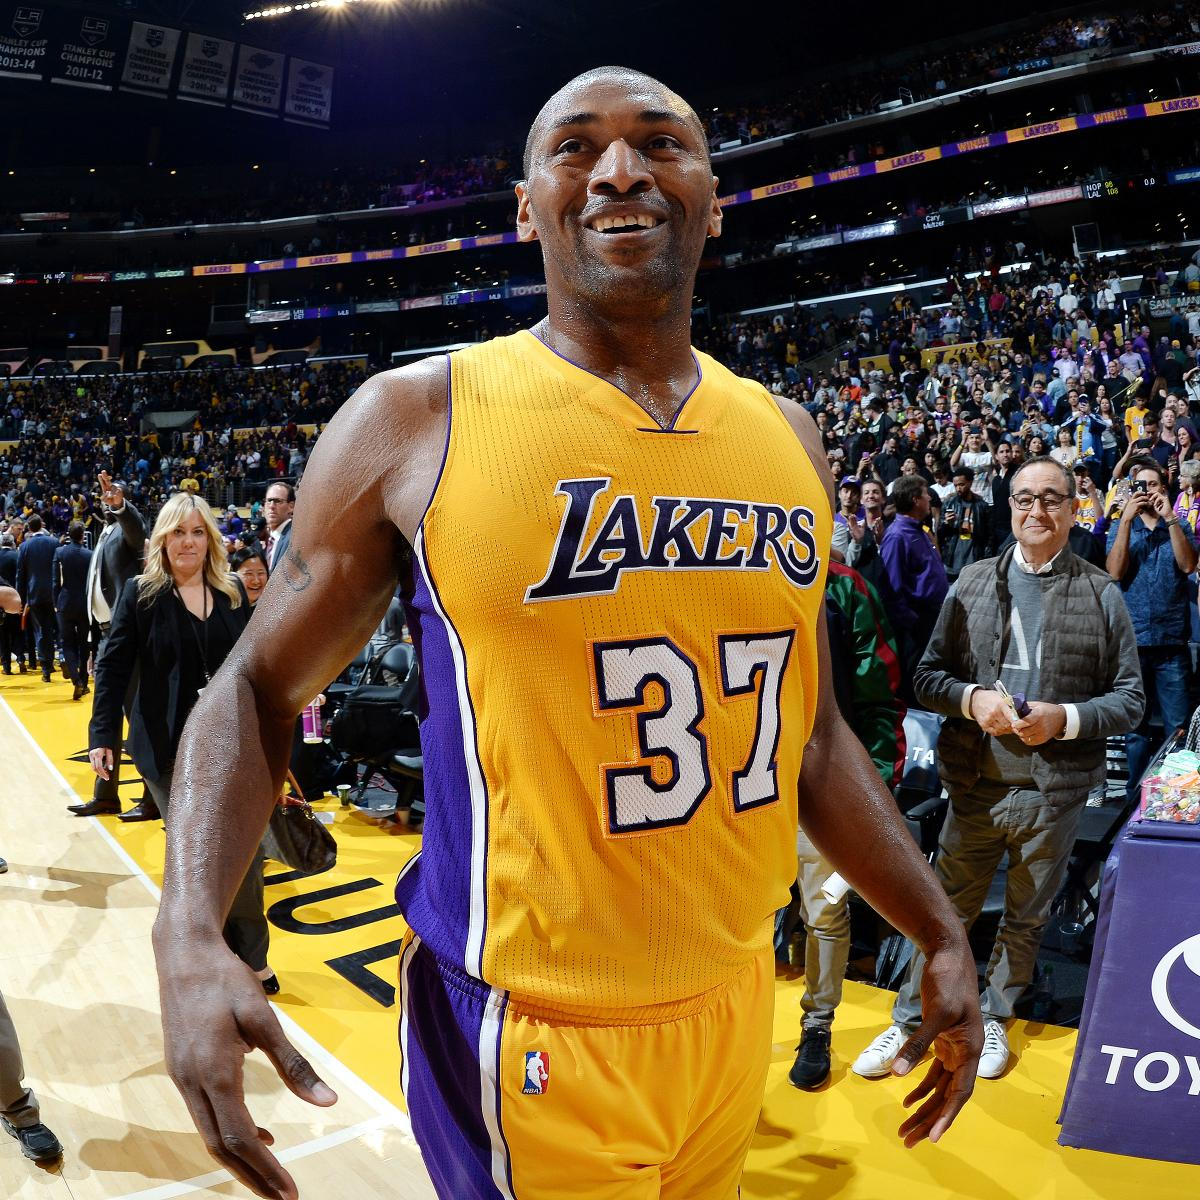 Lakers News: Metta World Peace Hired as Coach for LA's G League Team